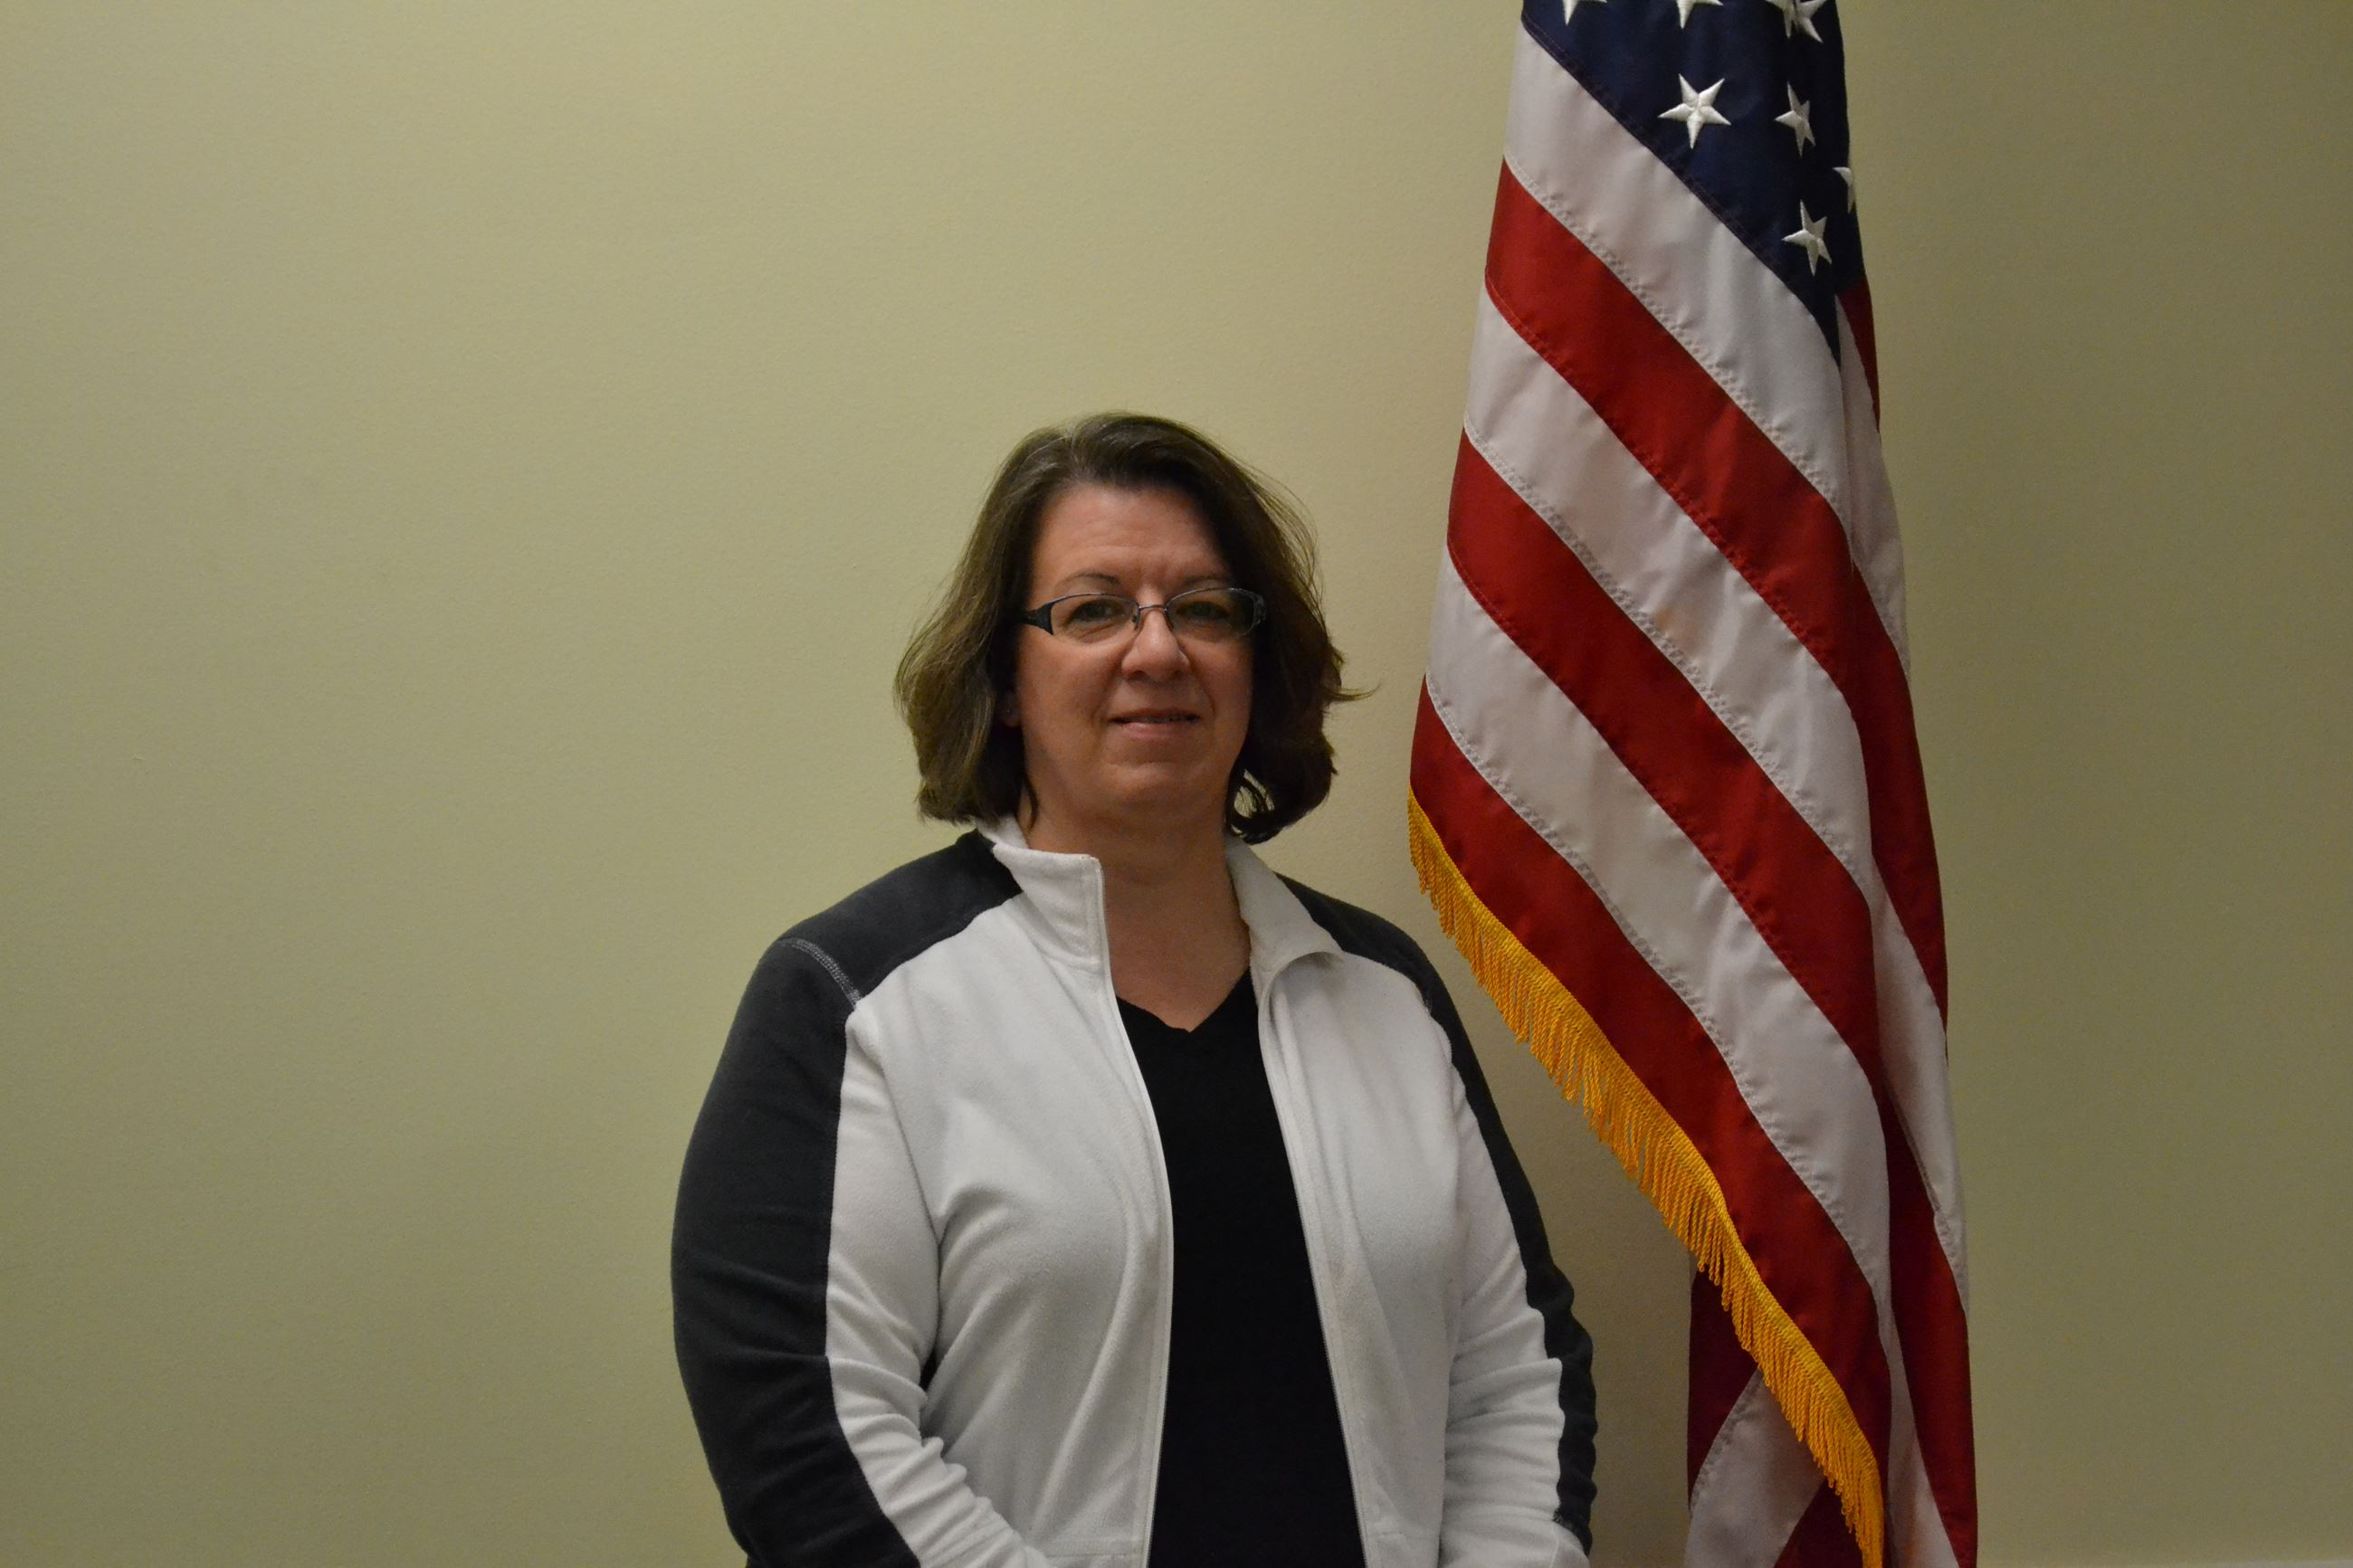 Council Member - Suzette Boesger (Image)